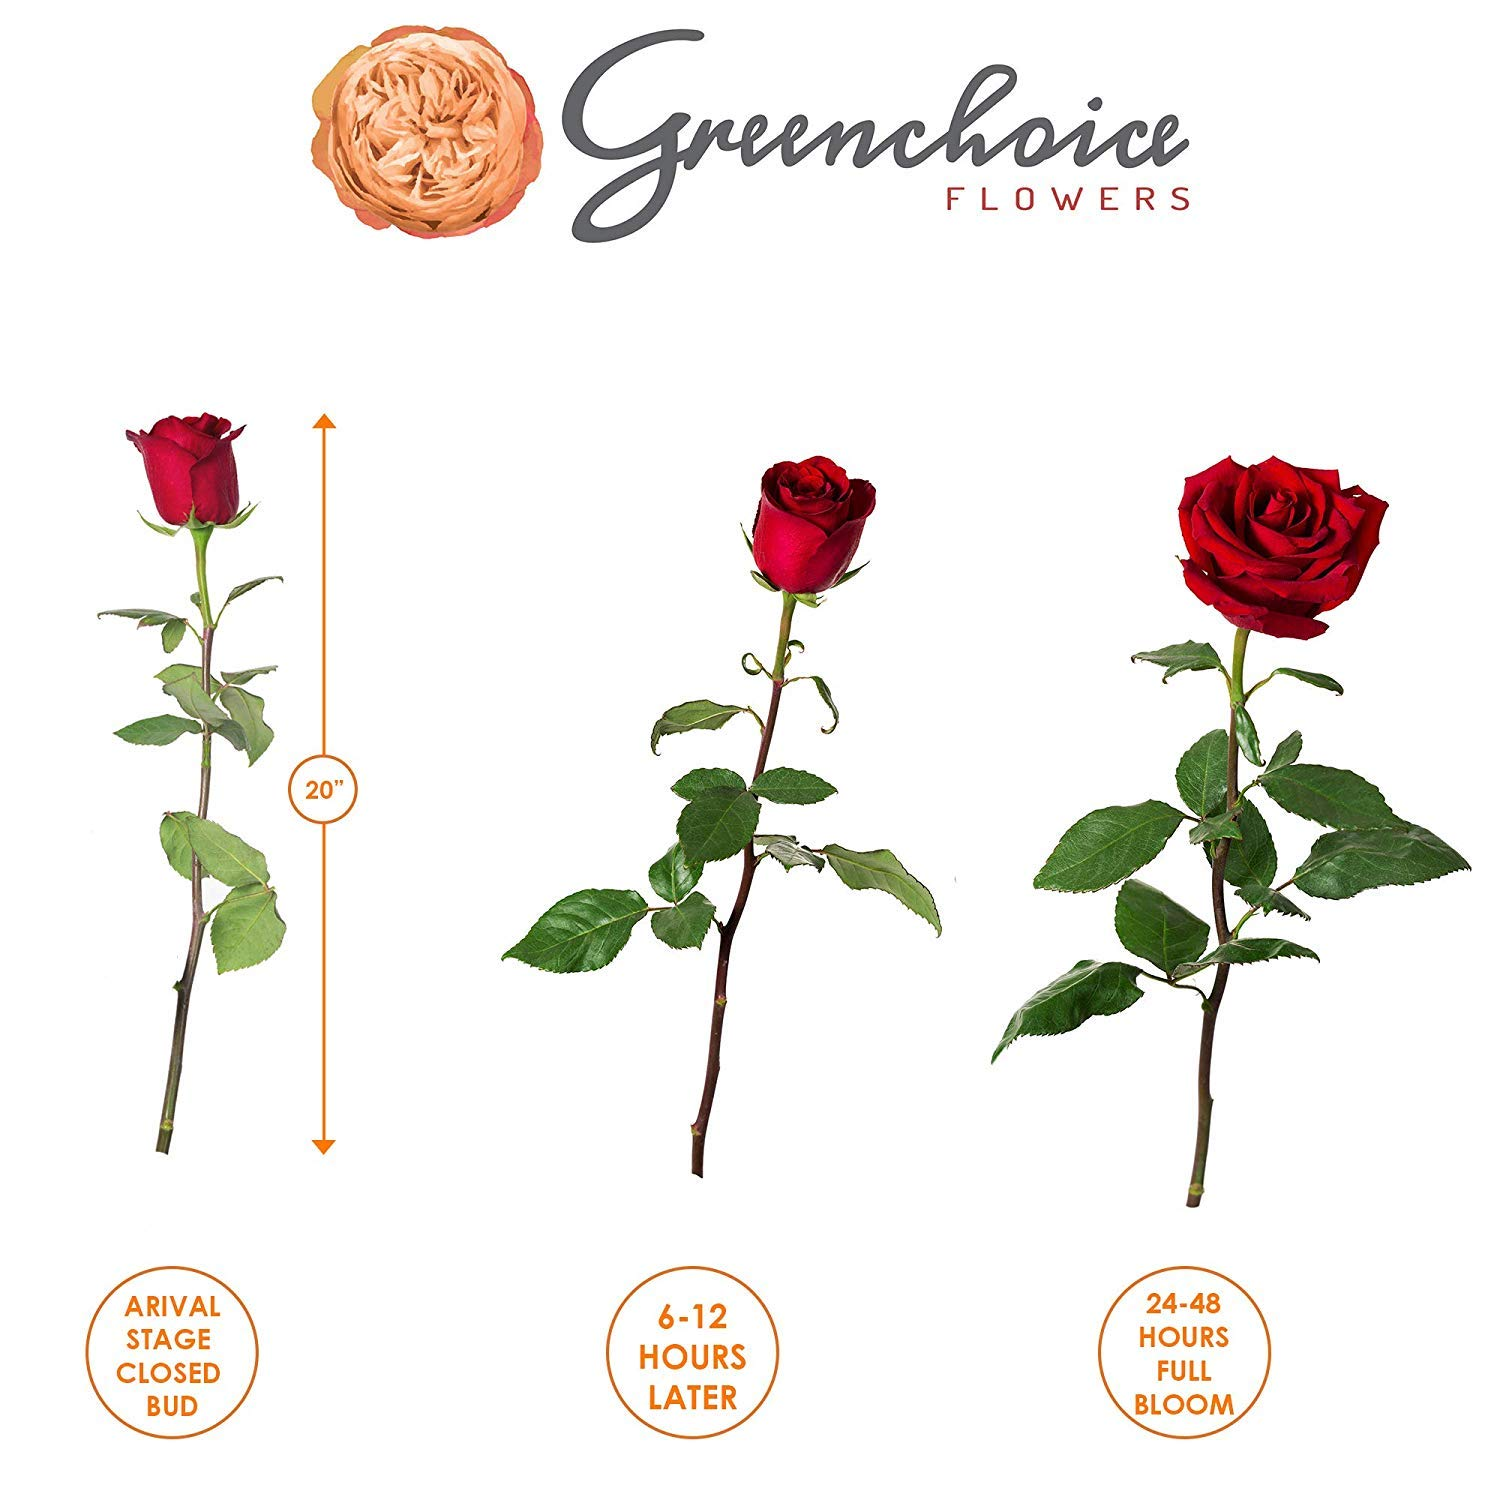 Green Choice Flowers - 24 (2 Dozen) Premium Red Fresh Roses with 20 inch Long Stem Farm Fresh Flowers Beautiful Red Rose Flower Cut Per Order Direct from Farm Fast Free Delivery Long Lasting by Greenchoiceflowers (Image #7)